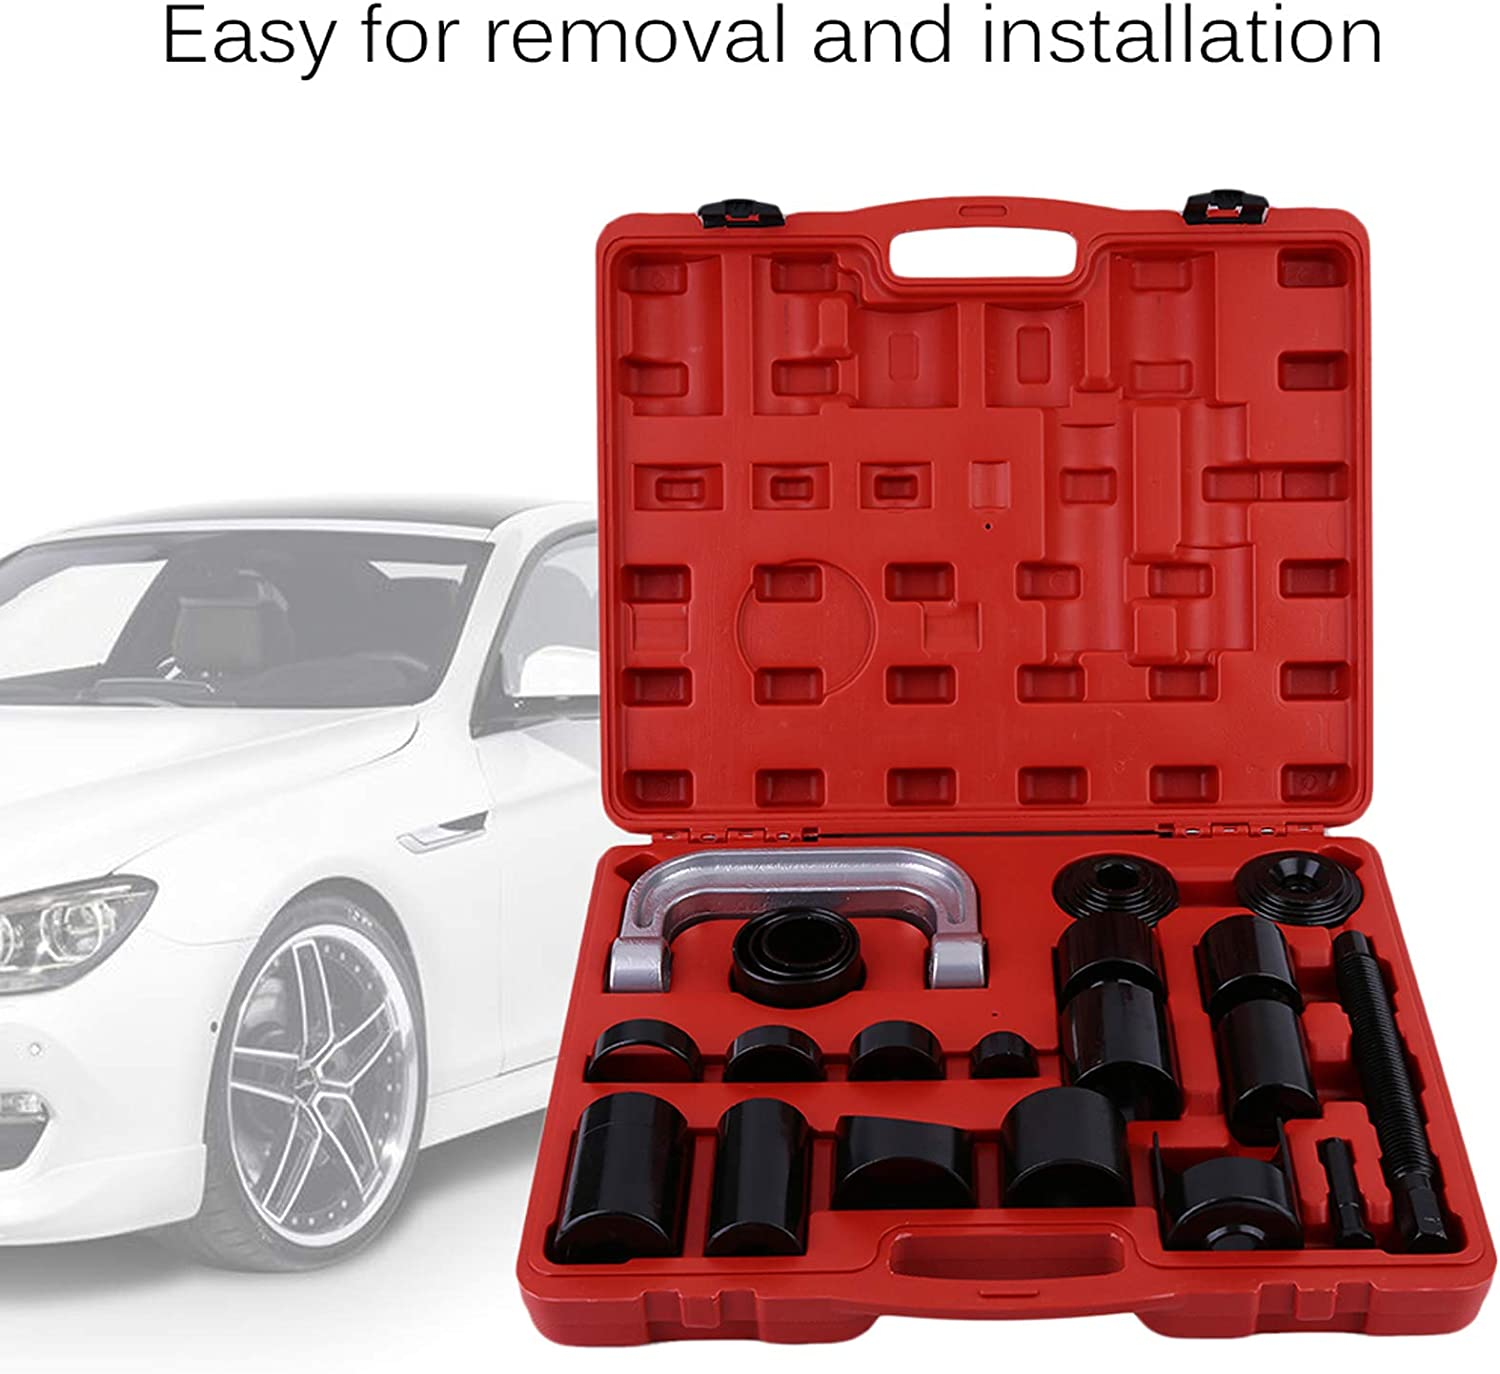 Ball Joint Press Kit Heavy Duty Master Ball Joint Service Tool with 4x4 Adapters U Joint Removal Tool Puller for Most 2WD and 4WD Cars and Light Trucks SUVs 21pcs Ball Joint Removal Tool